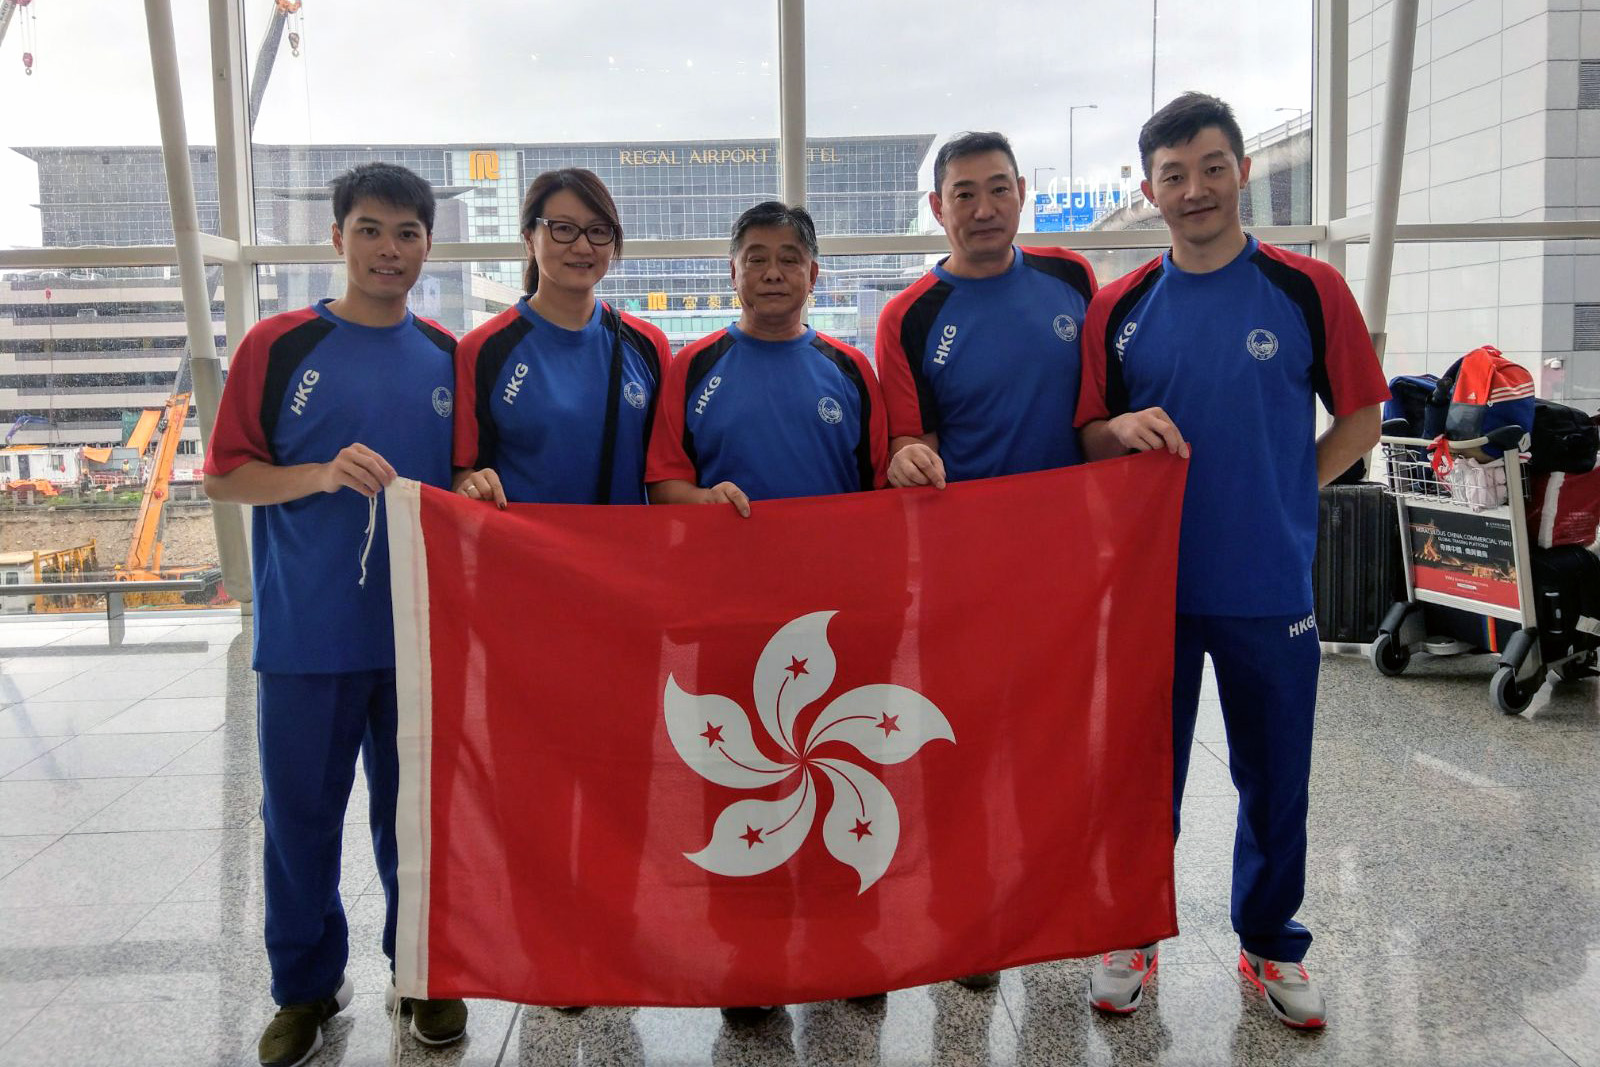 Win Tin Swimming Club - Taiwan Age Group Swimming Championships 2